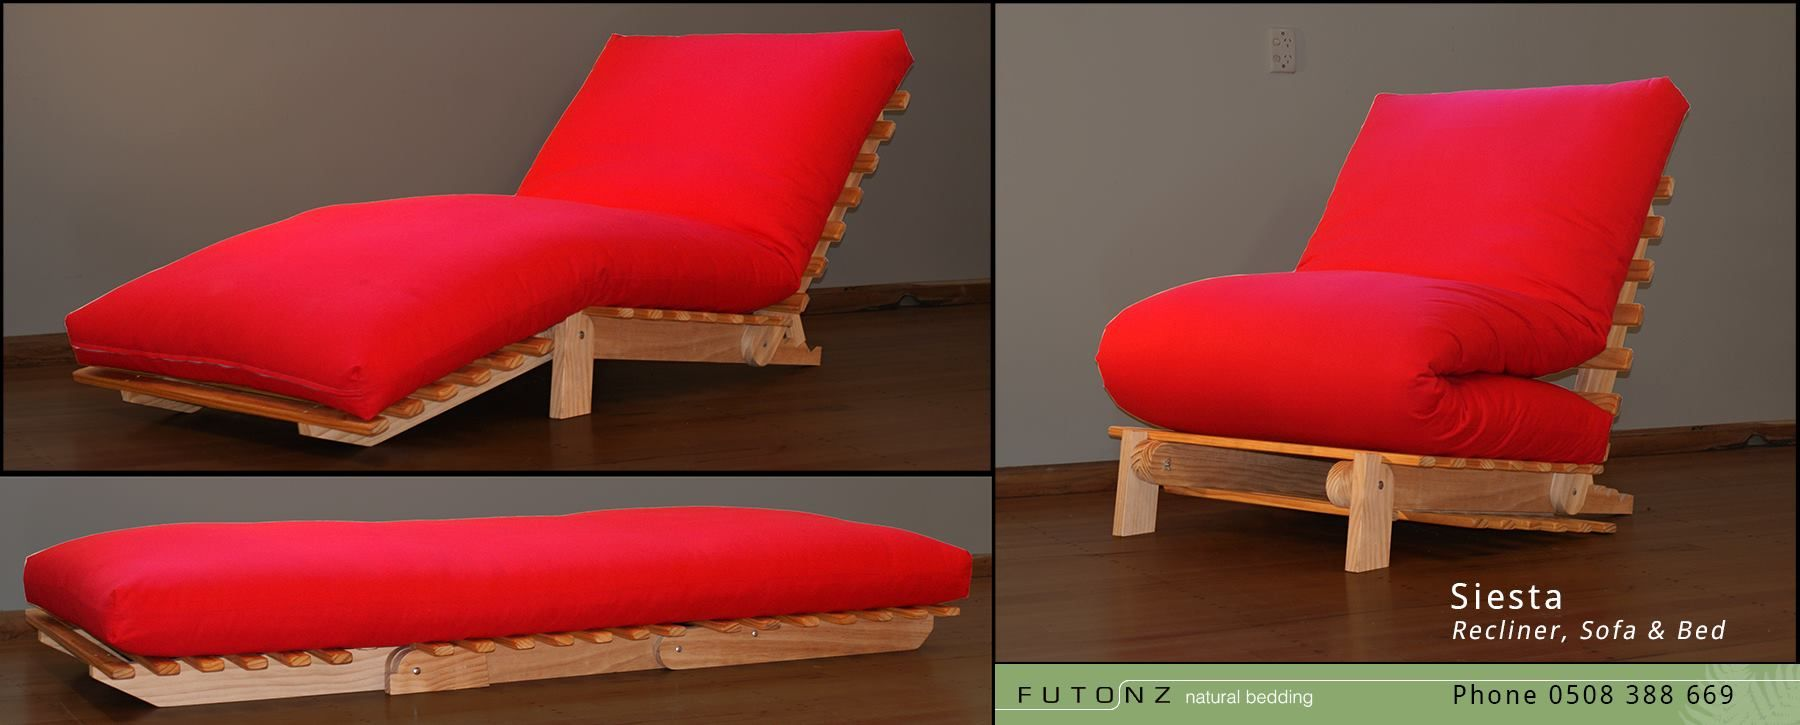 the siesta an authentic cotton futon that adapts to three positions